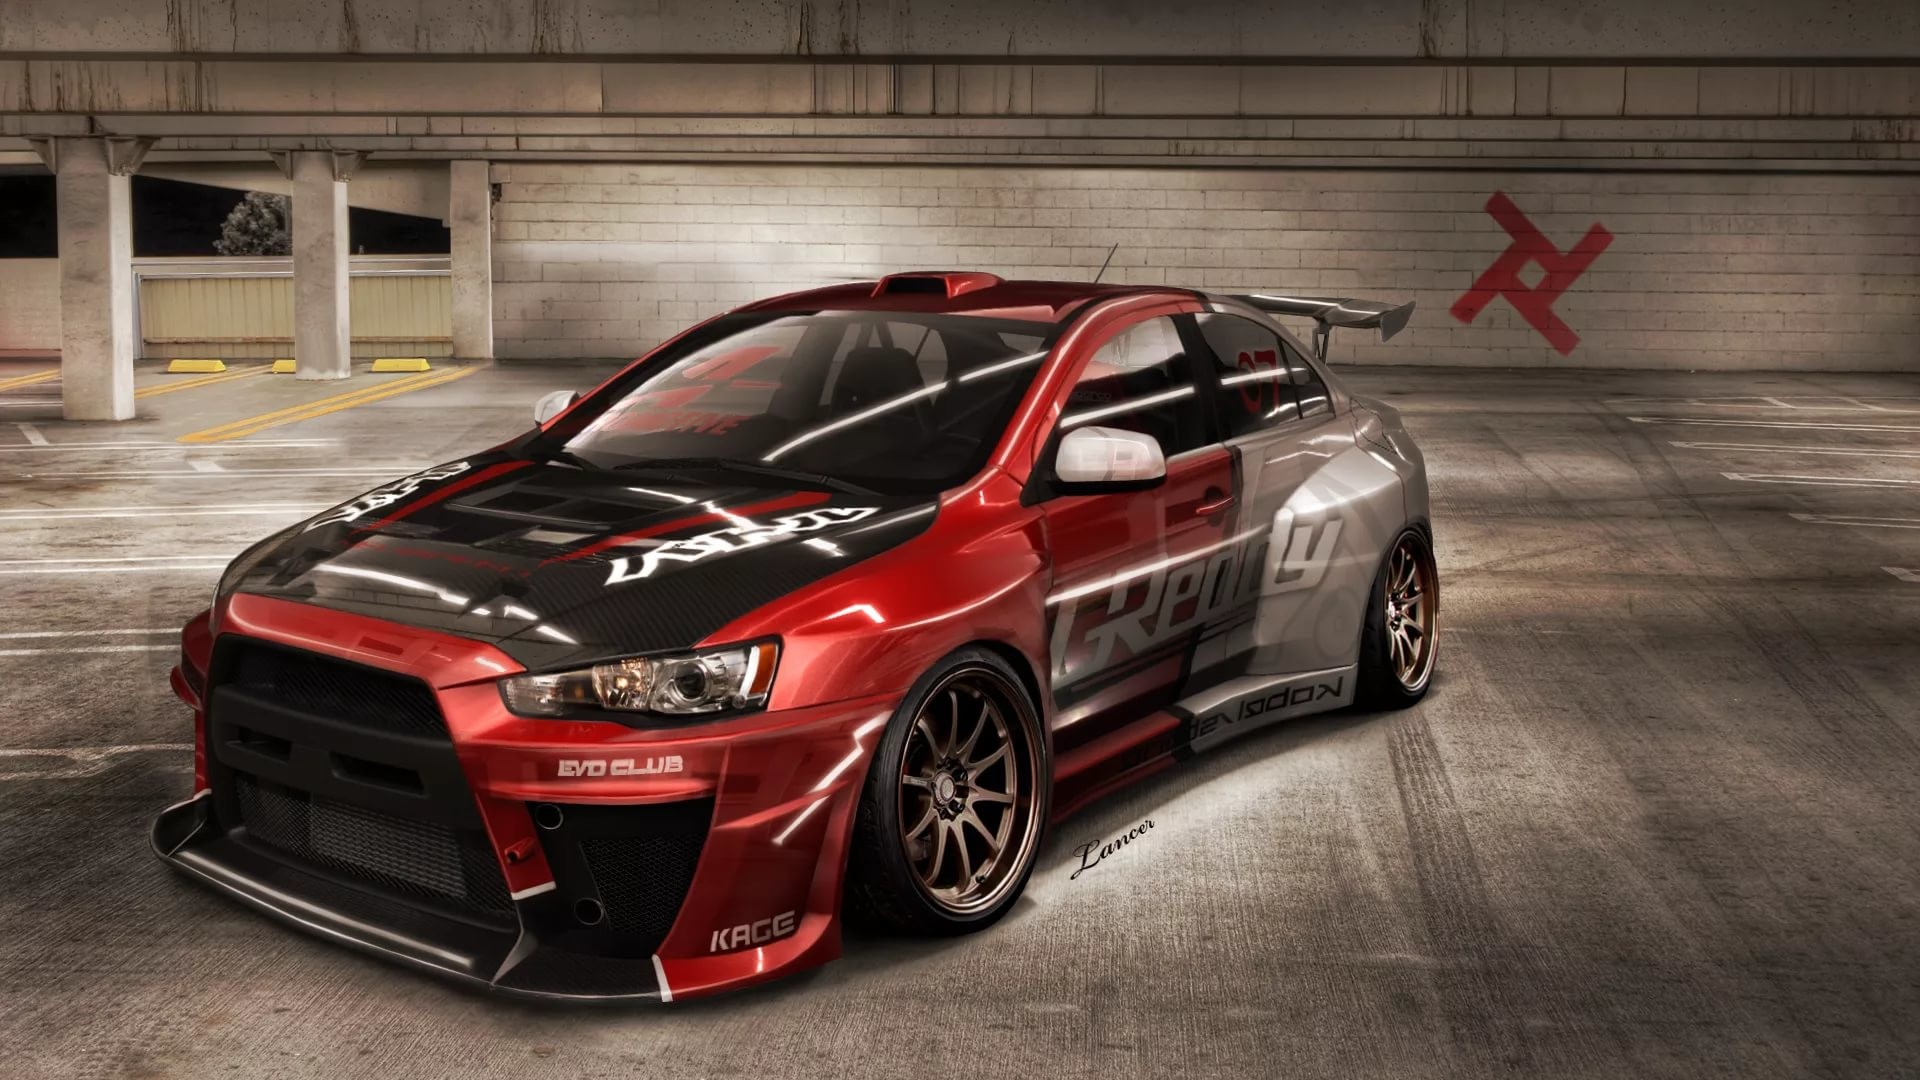 1920x1080 ... Mitsubishi Lancer Evo X Wallpaper good ...